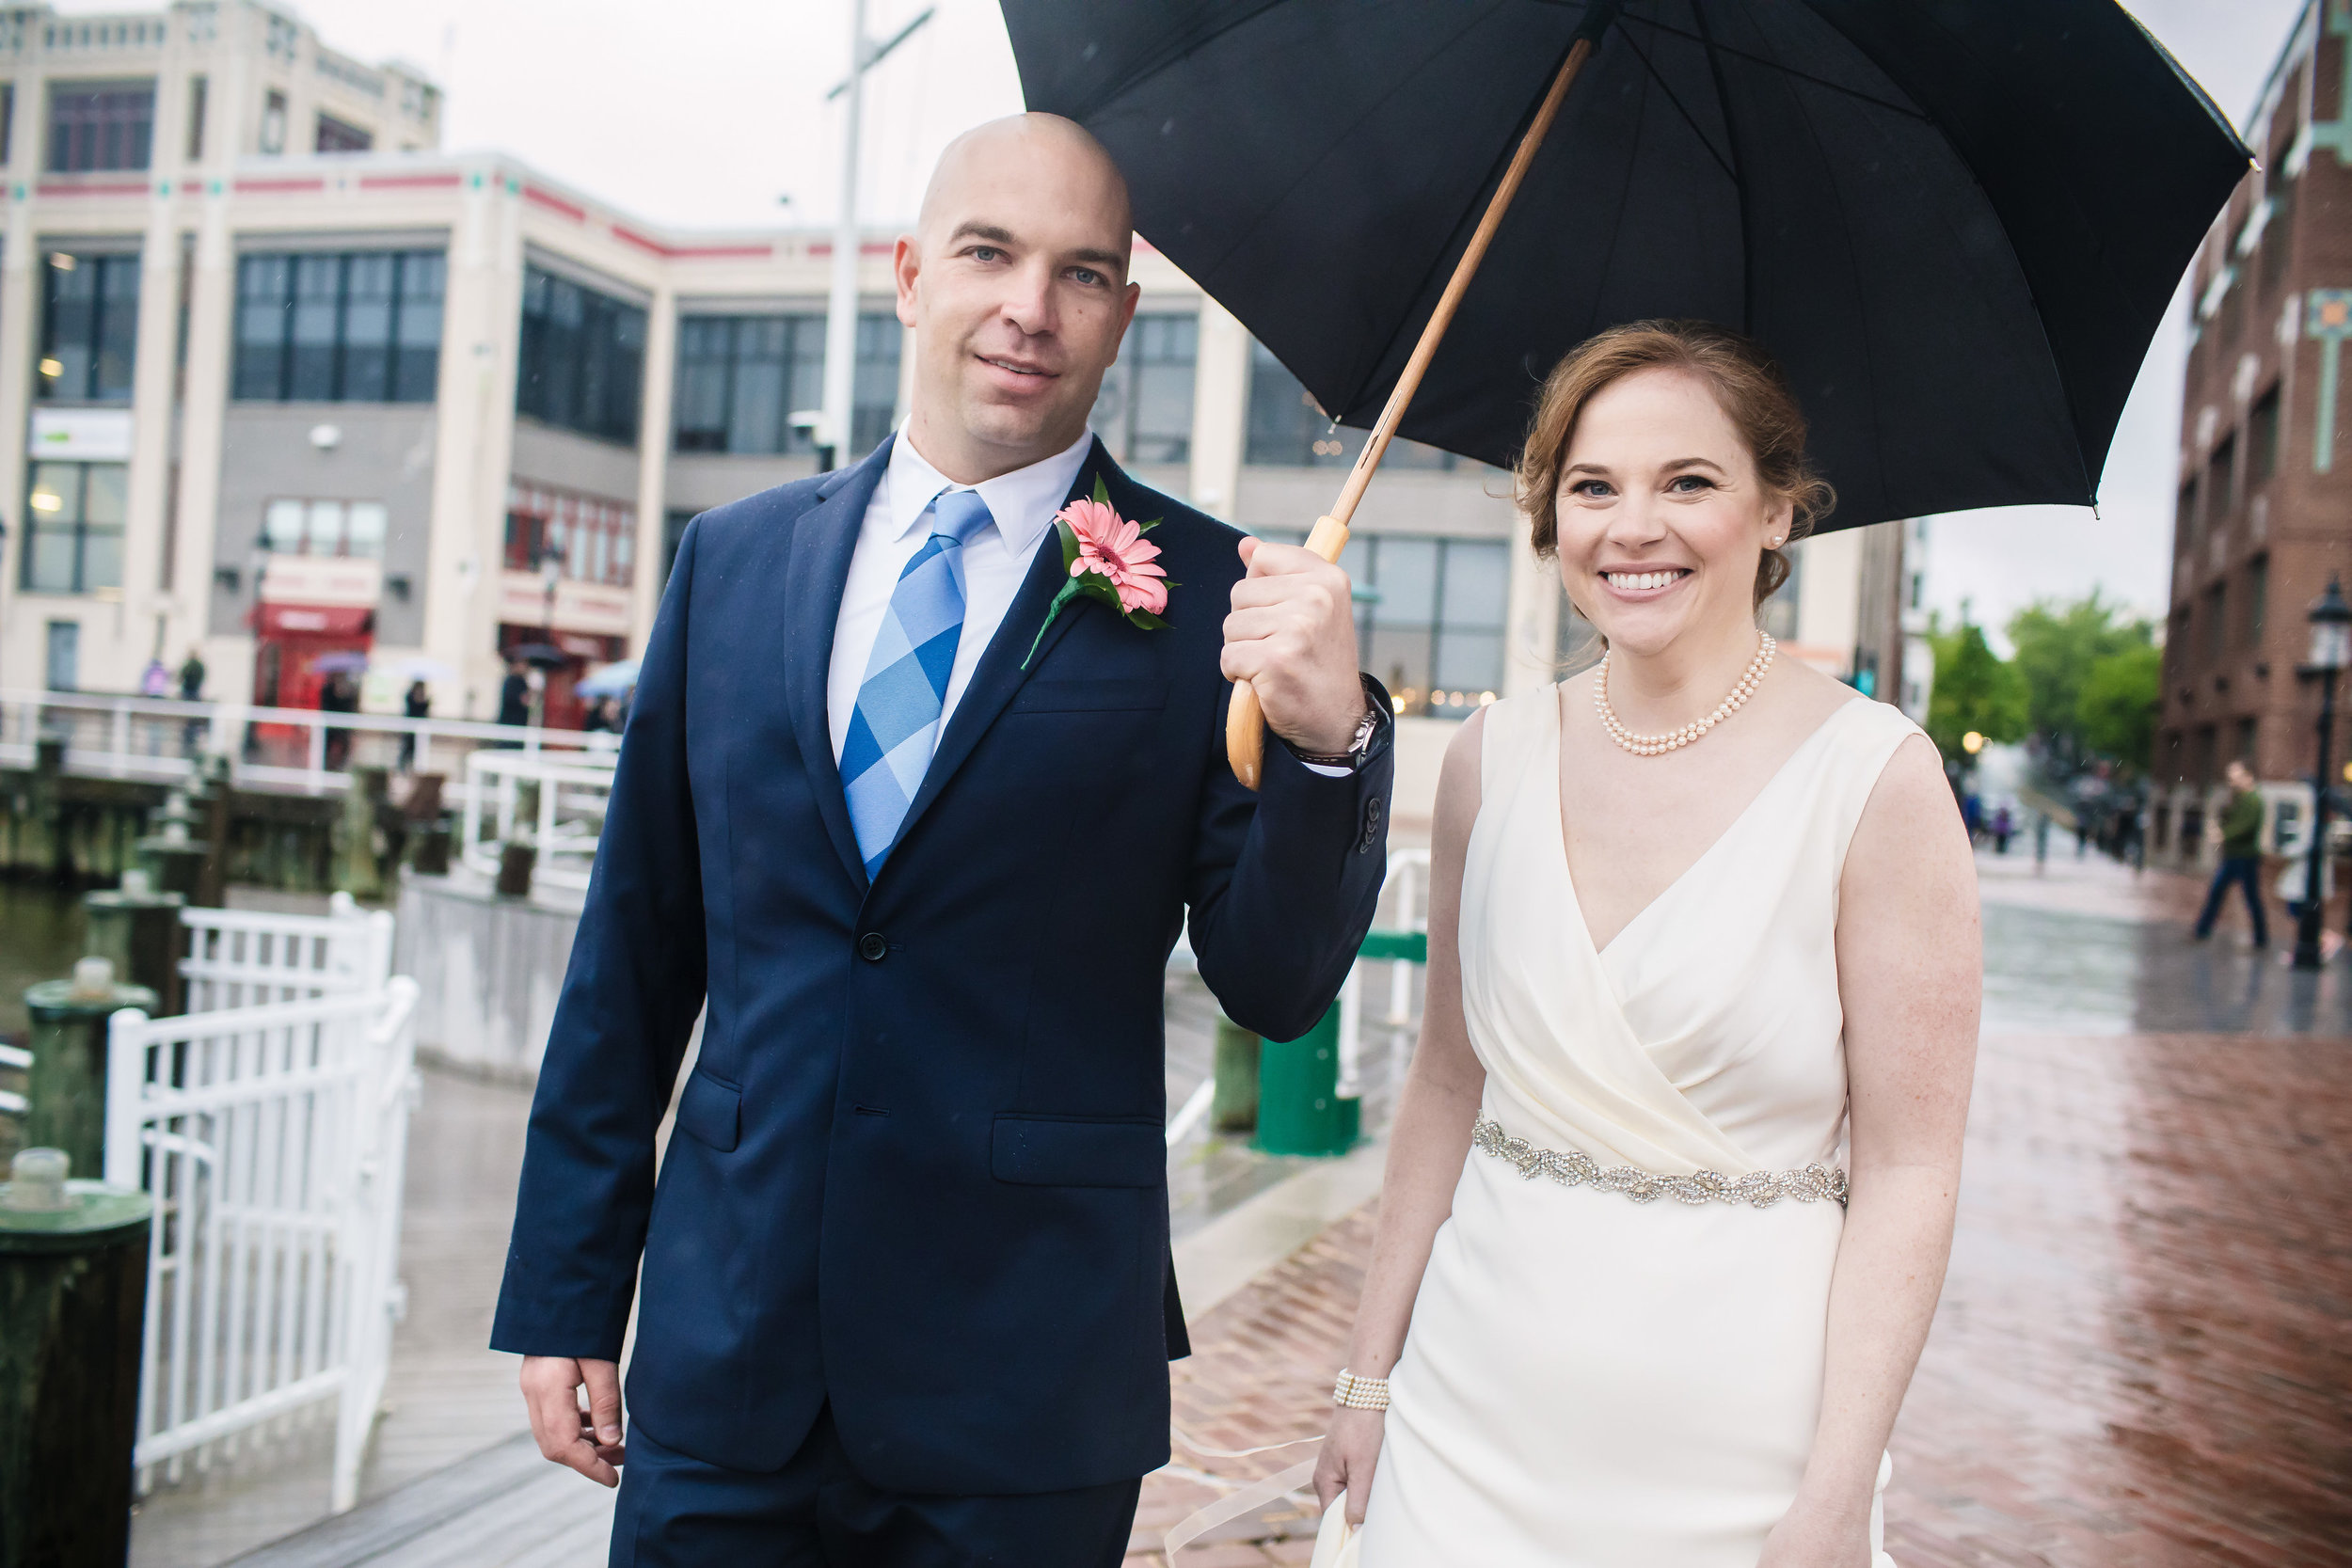 brielle-davis-events-torped-factory-wedding-bride-and-groom-outside-umbrella-raining-photography-by-brea.jpg